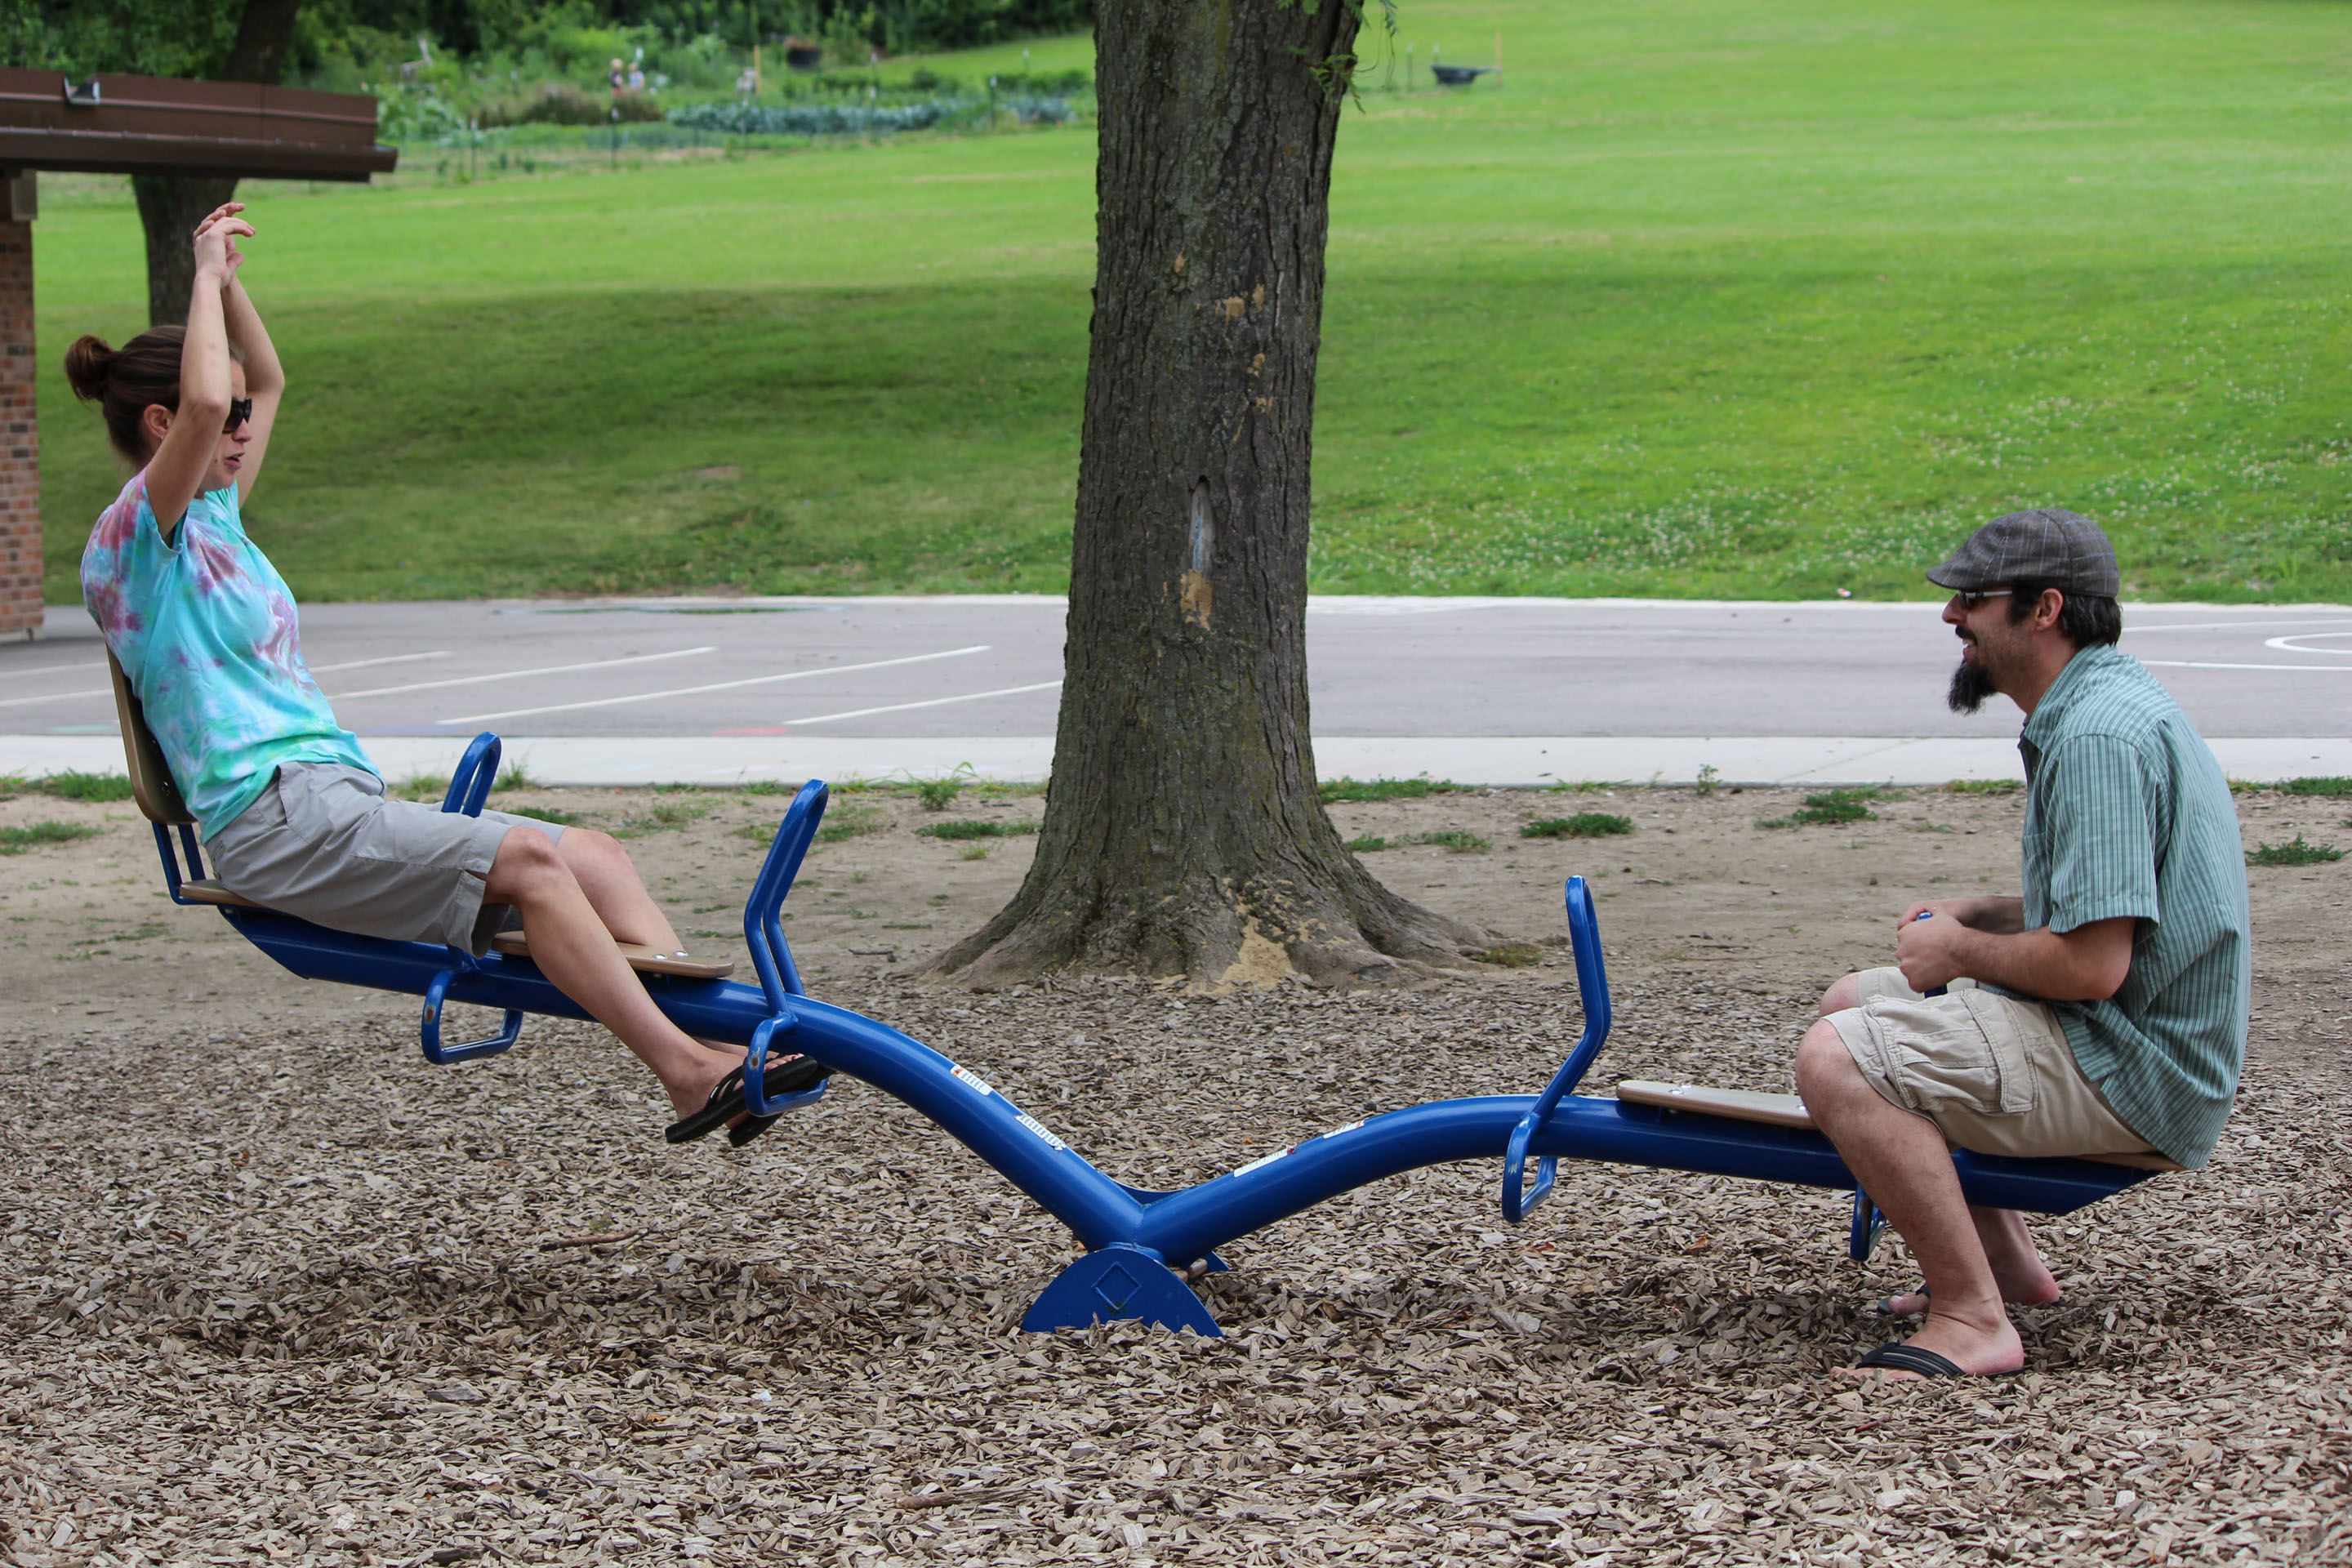 Teeter Totter | Playground Equipment Teeter Totter | Teeter Toter